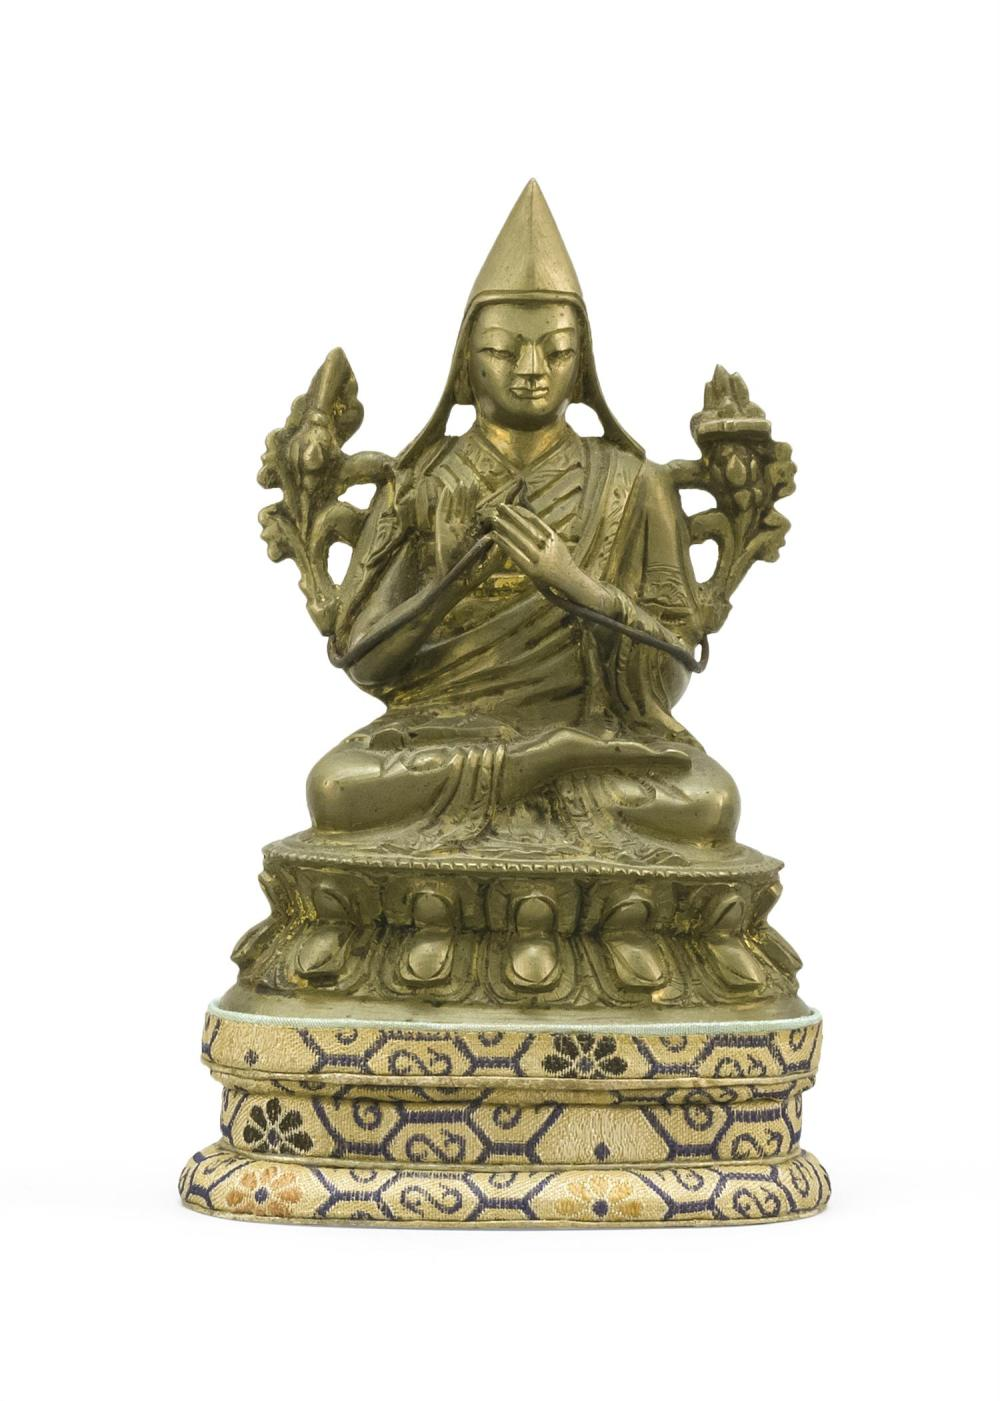 "SINO-TIBETAN BRONZE FIGURE OF A LAMA Seated on a lotus stand. Height 4.25"". Includes a brocade stand."